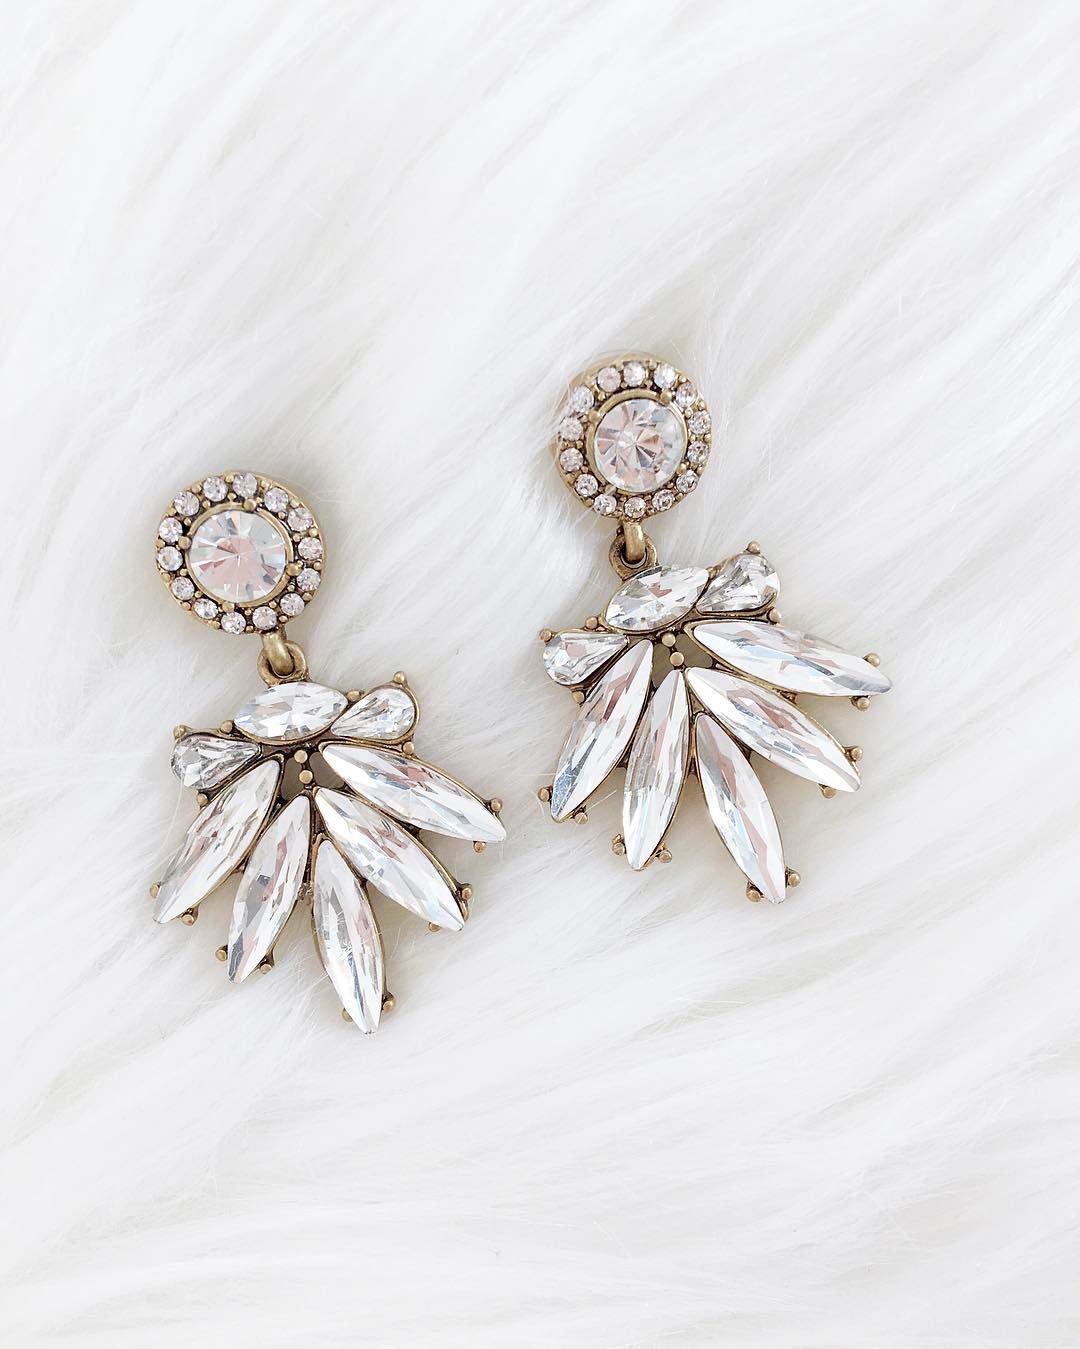 The Perfect Wedding Jewelry And Bridal Earrings Or Just